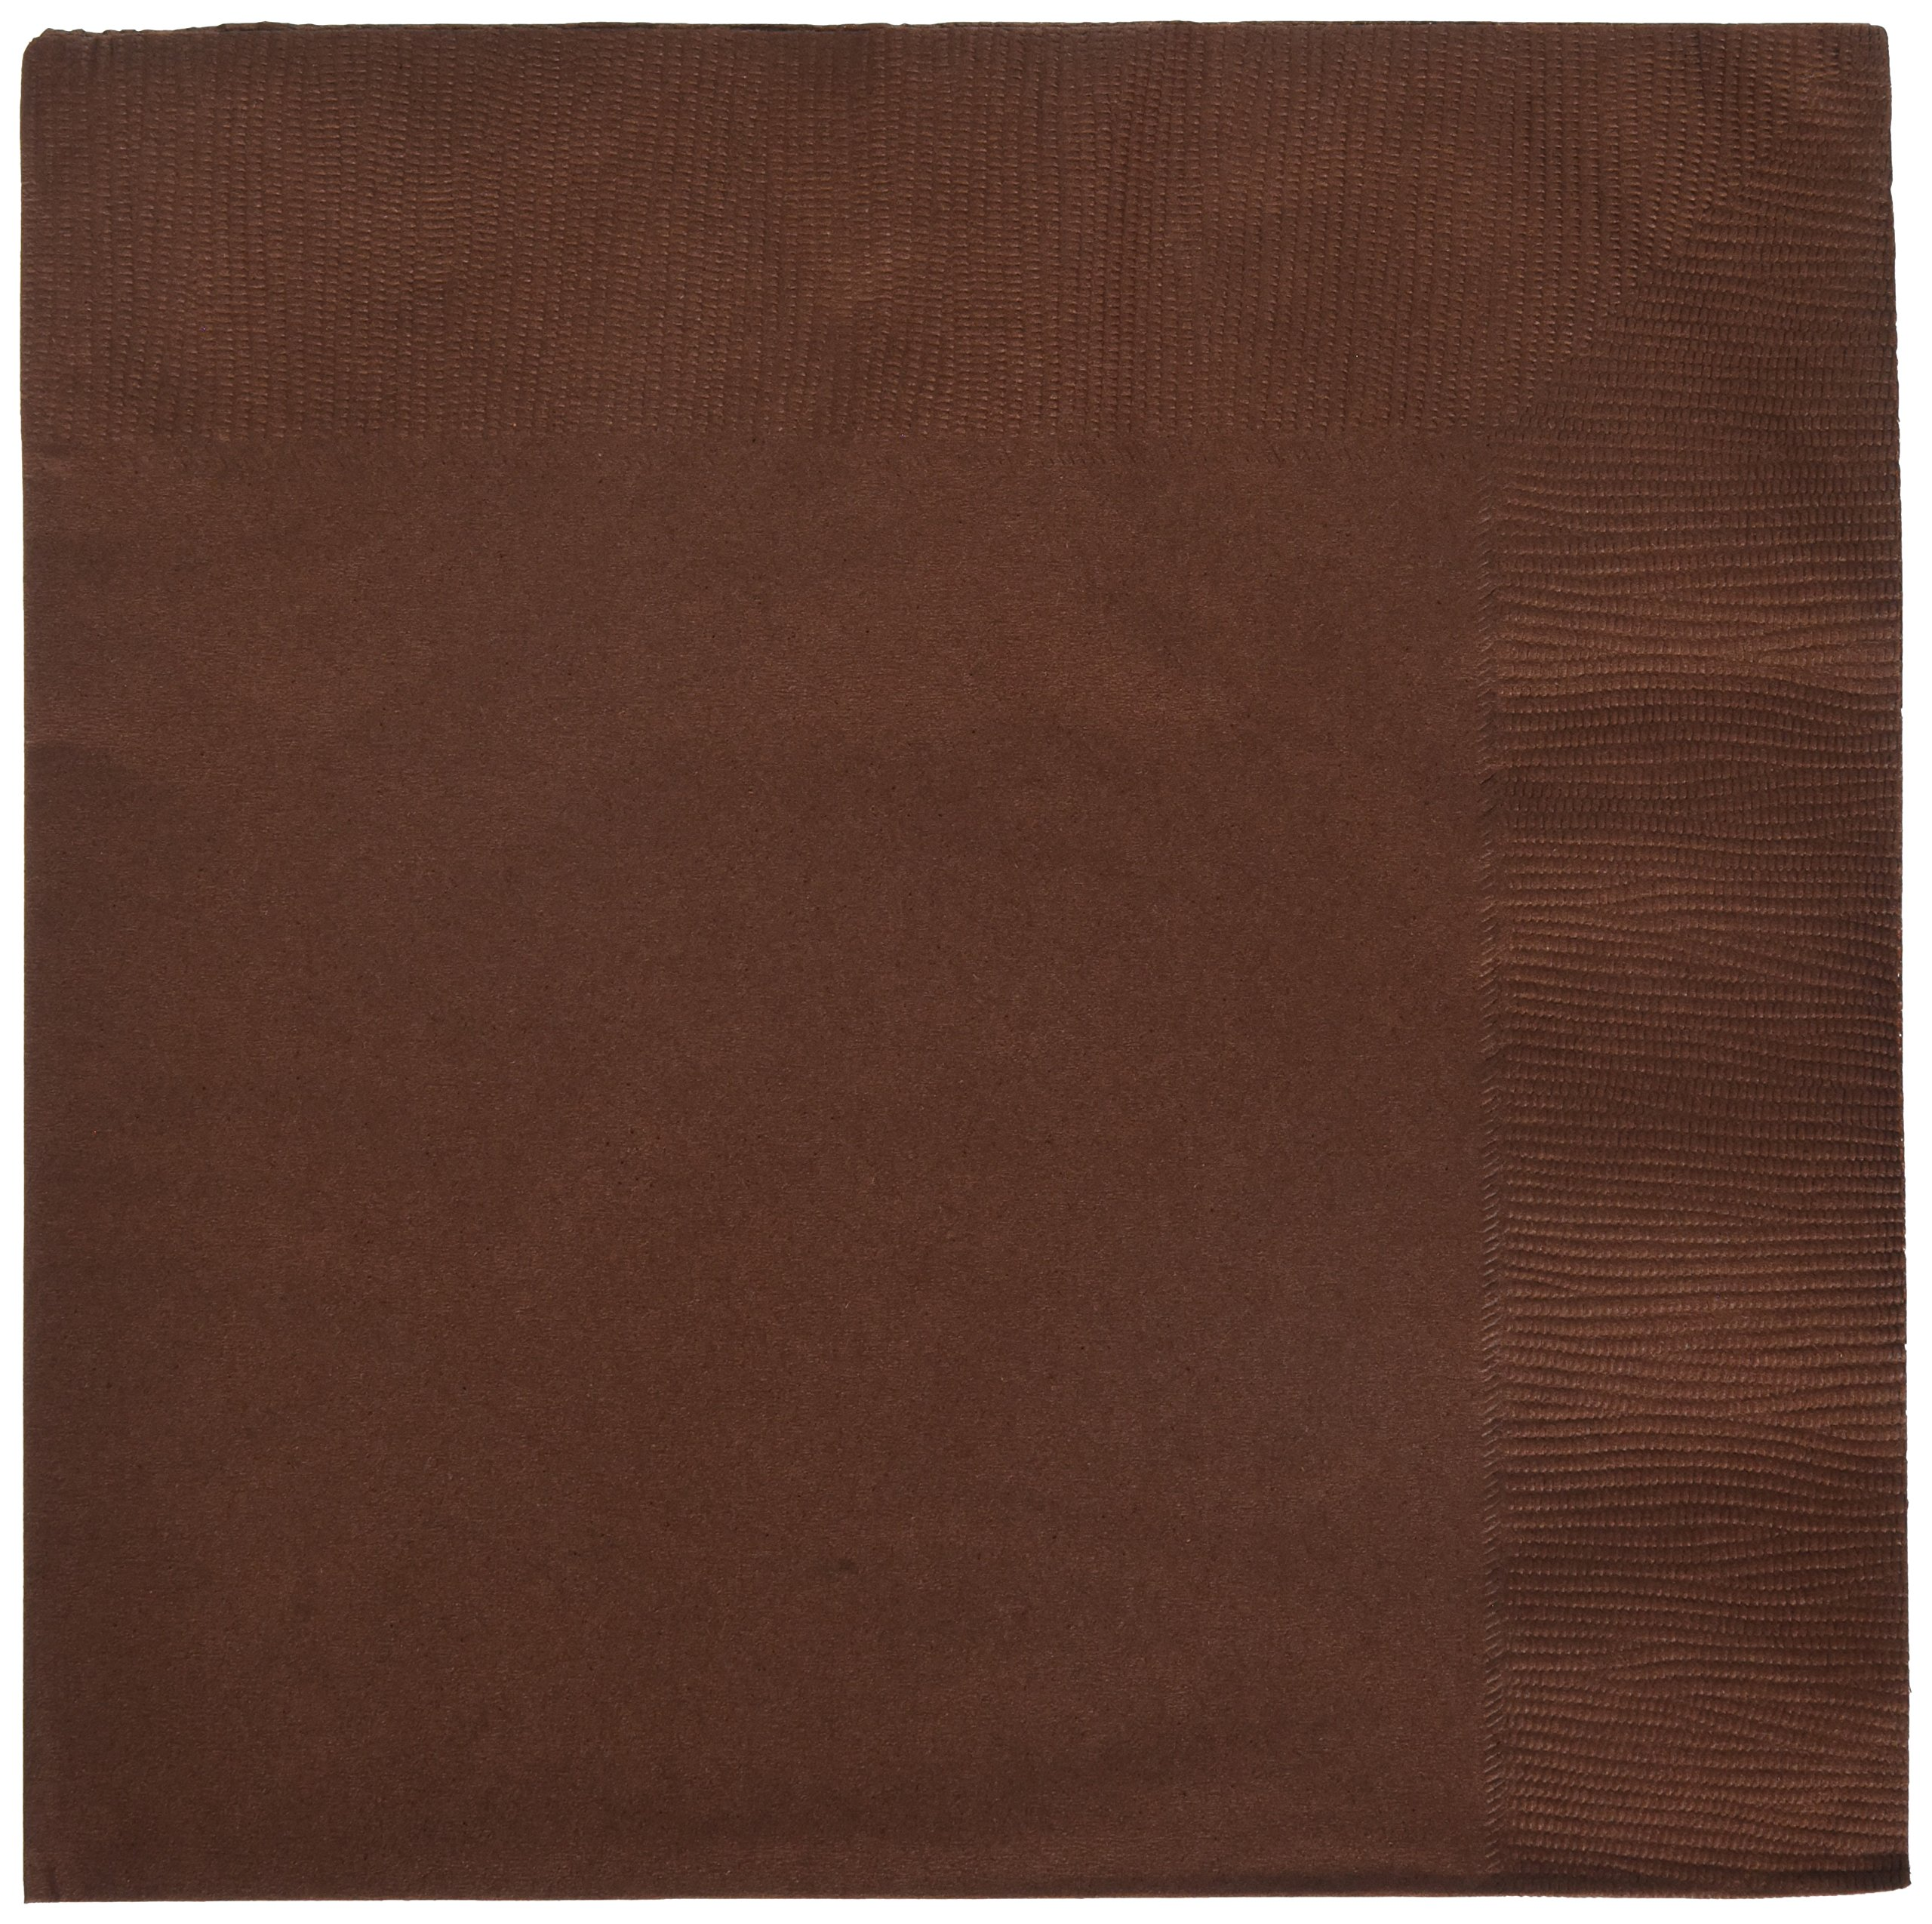 Amscan Disposable 2 Ply Dinner Party Napkins Tableware (Pack of 20), Chocolate Brown, 7 X 7